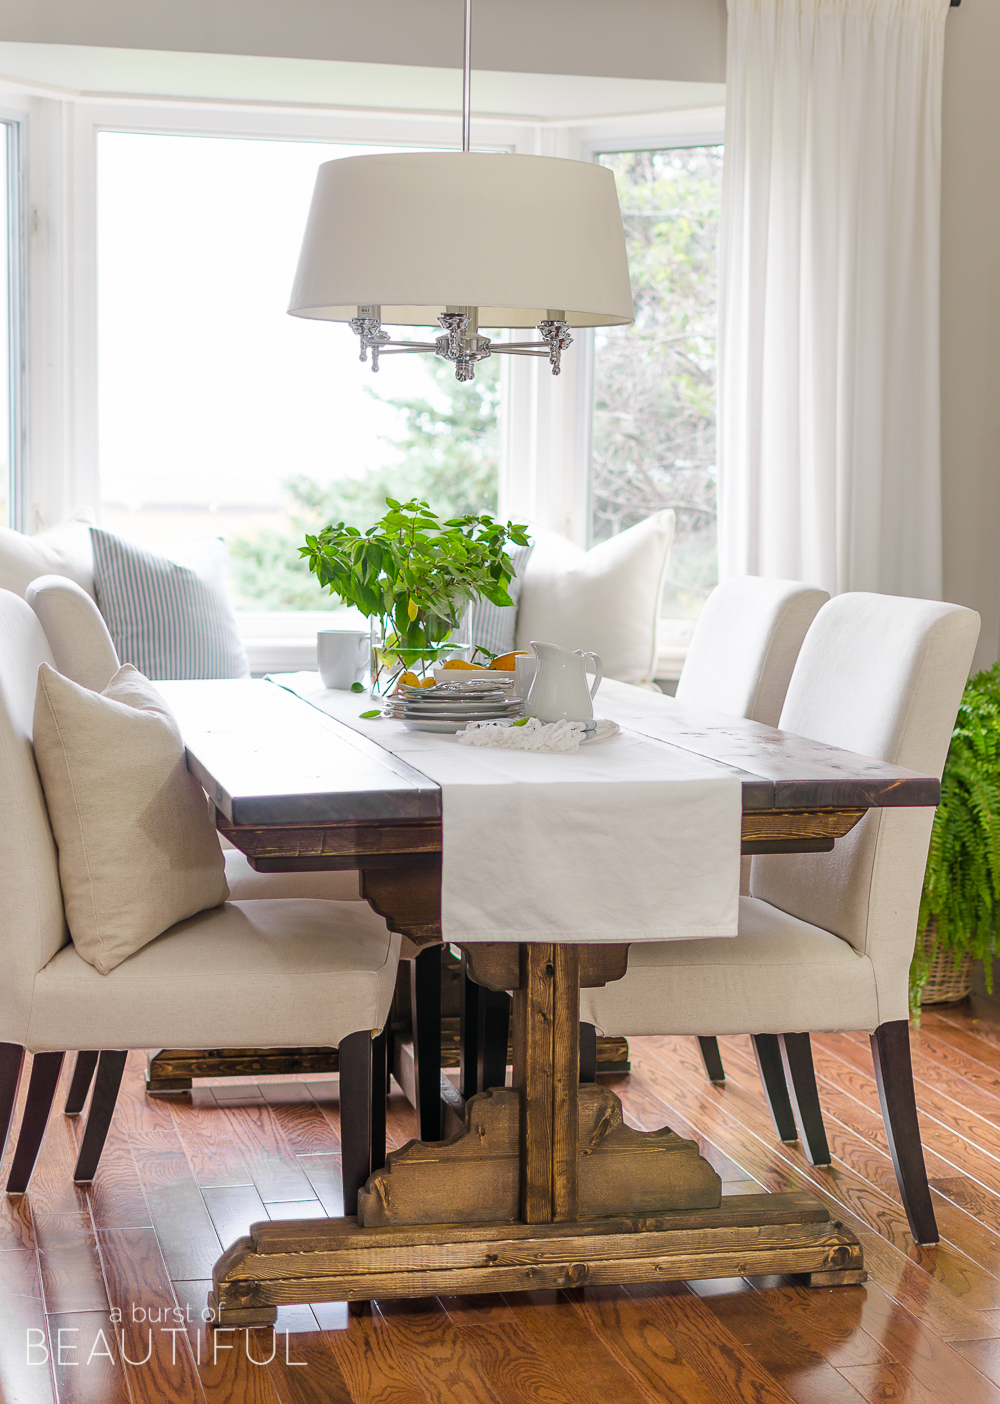 DIY Farmhouse dining table with plans to build your own!